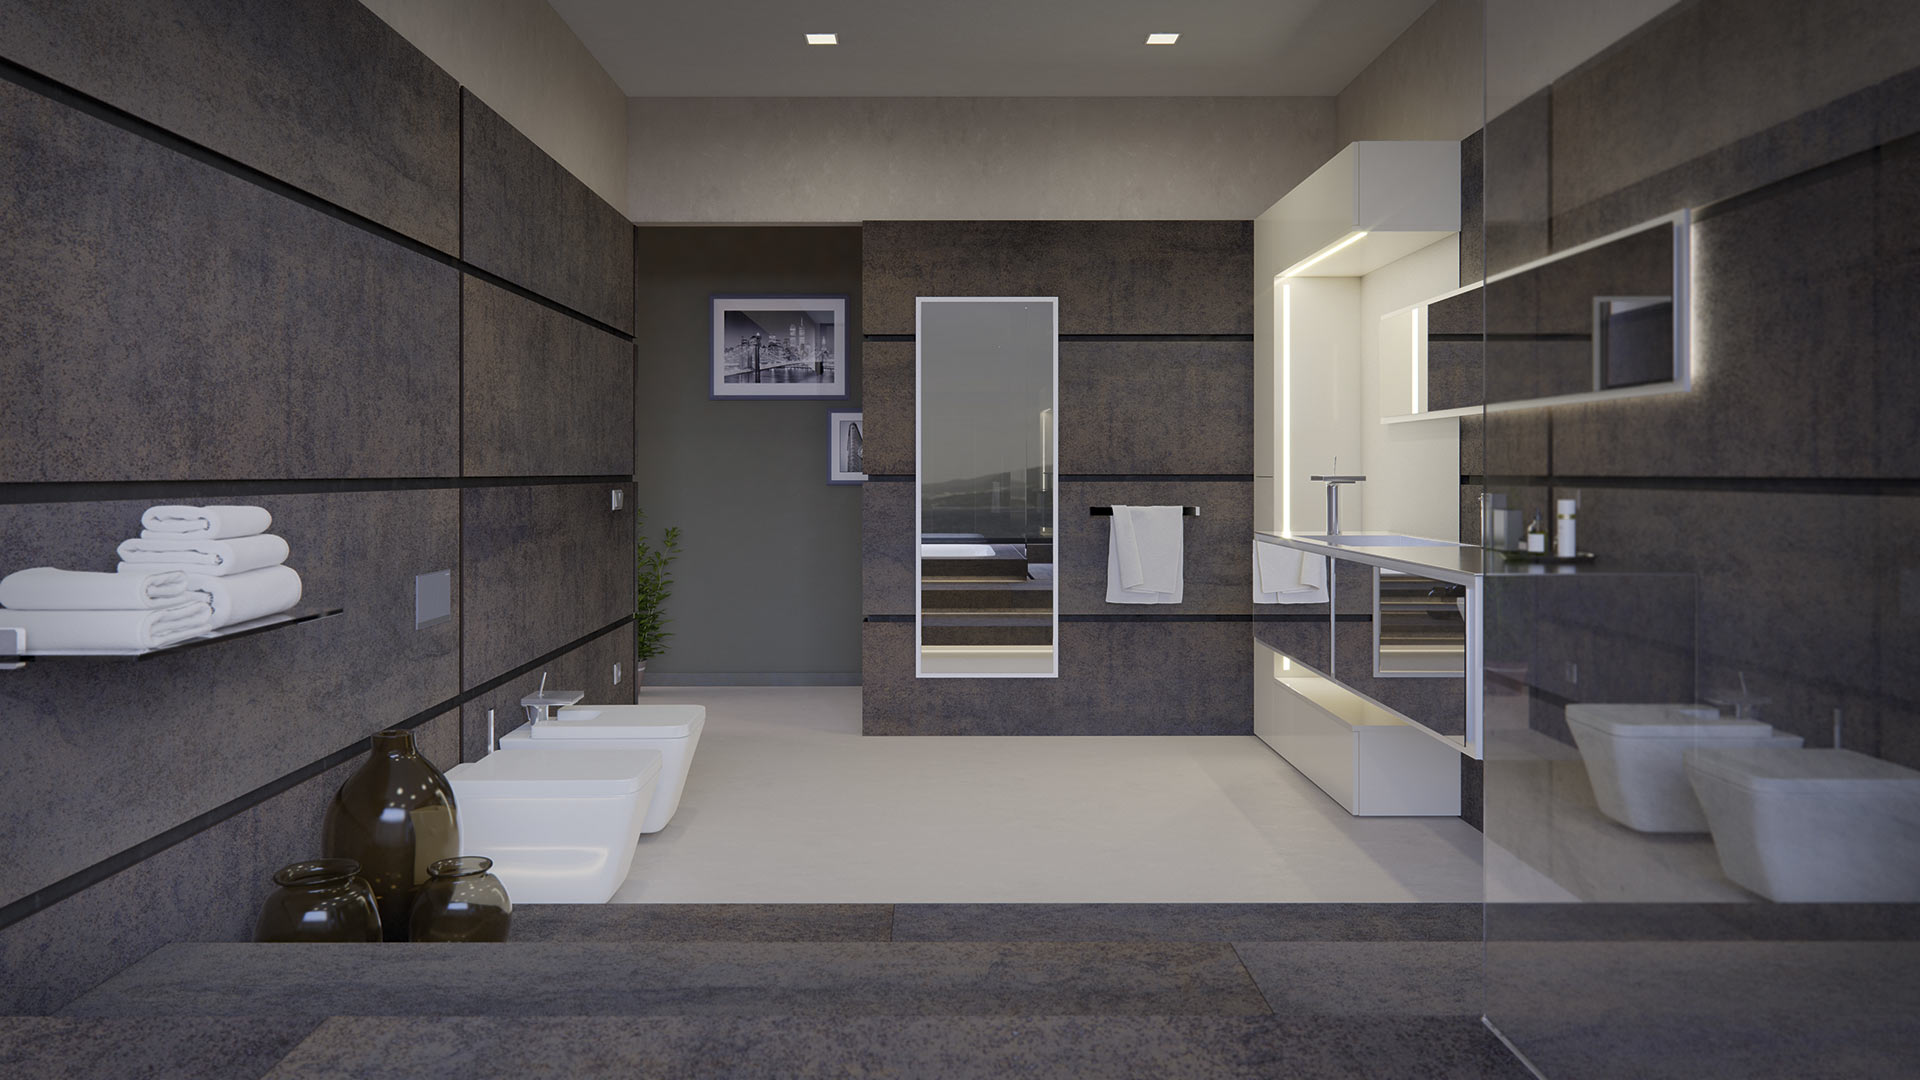 diseño de hogar senssiaOriginality with lines and combination of different materials to create a unique bathroom